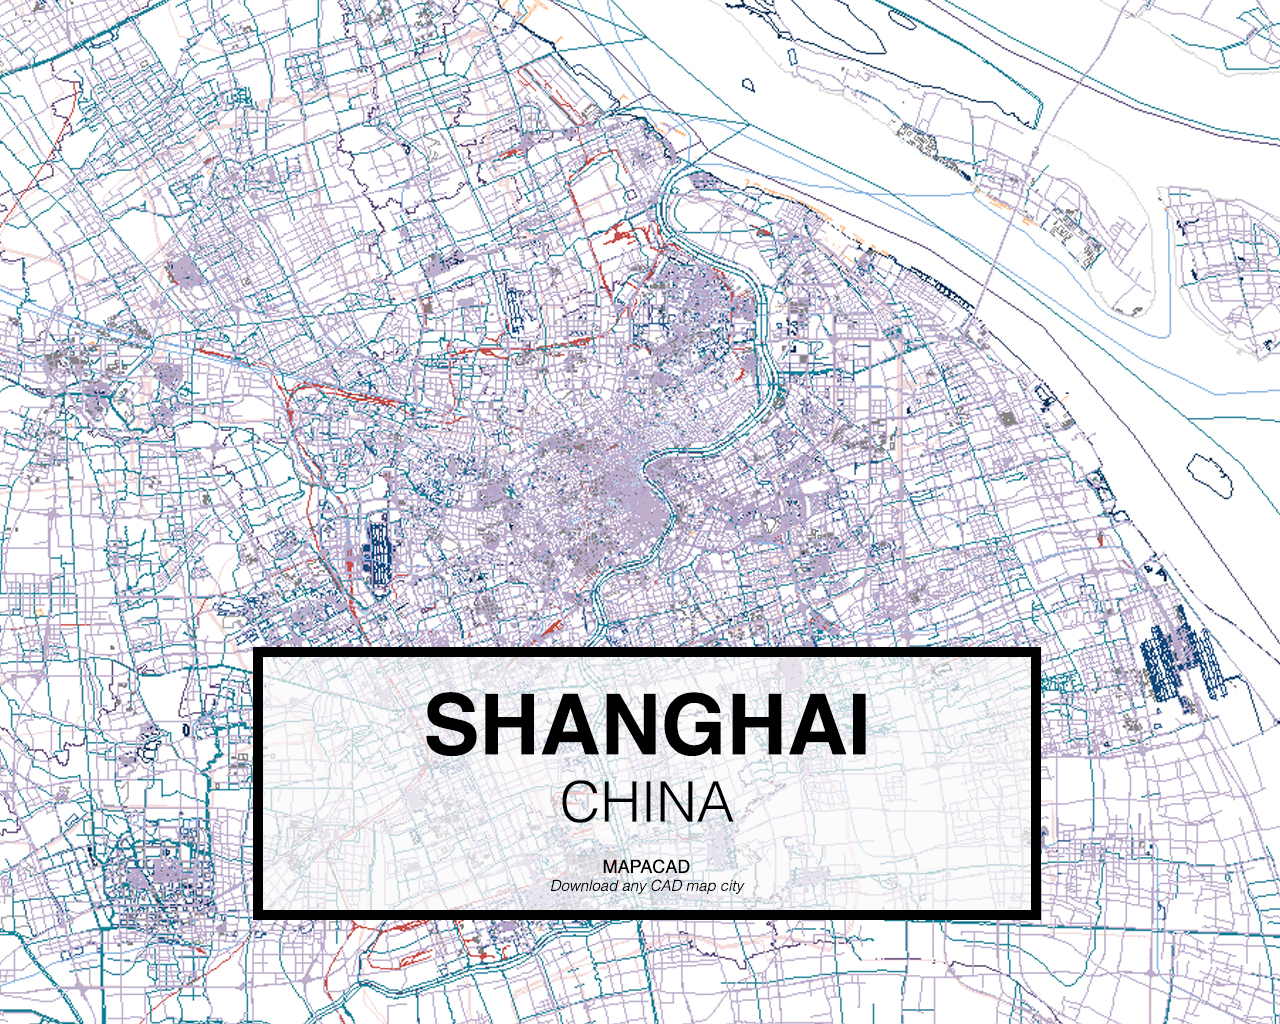 Shanghai dwg mapacad shanghai china 01 mapacad download map cad dwg gumiabroncs Images